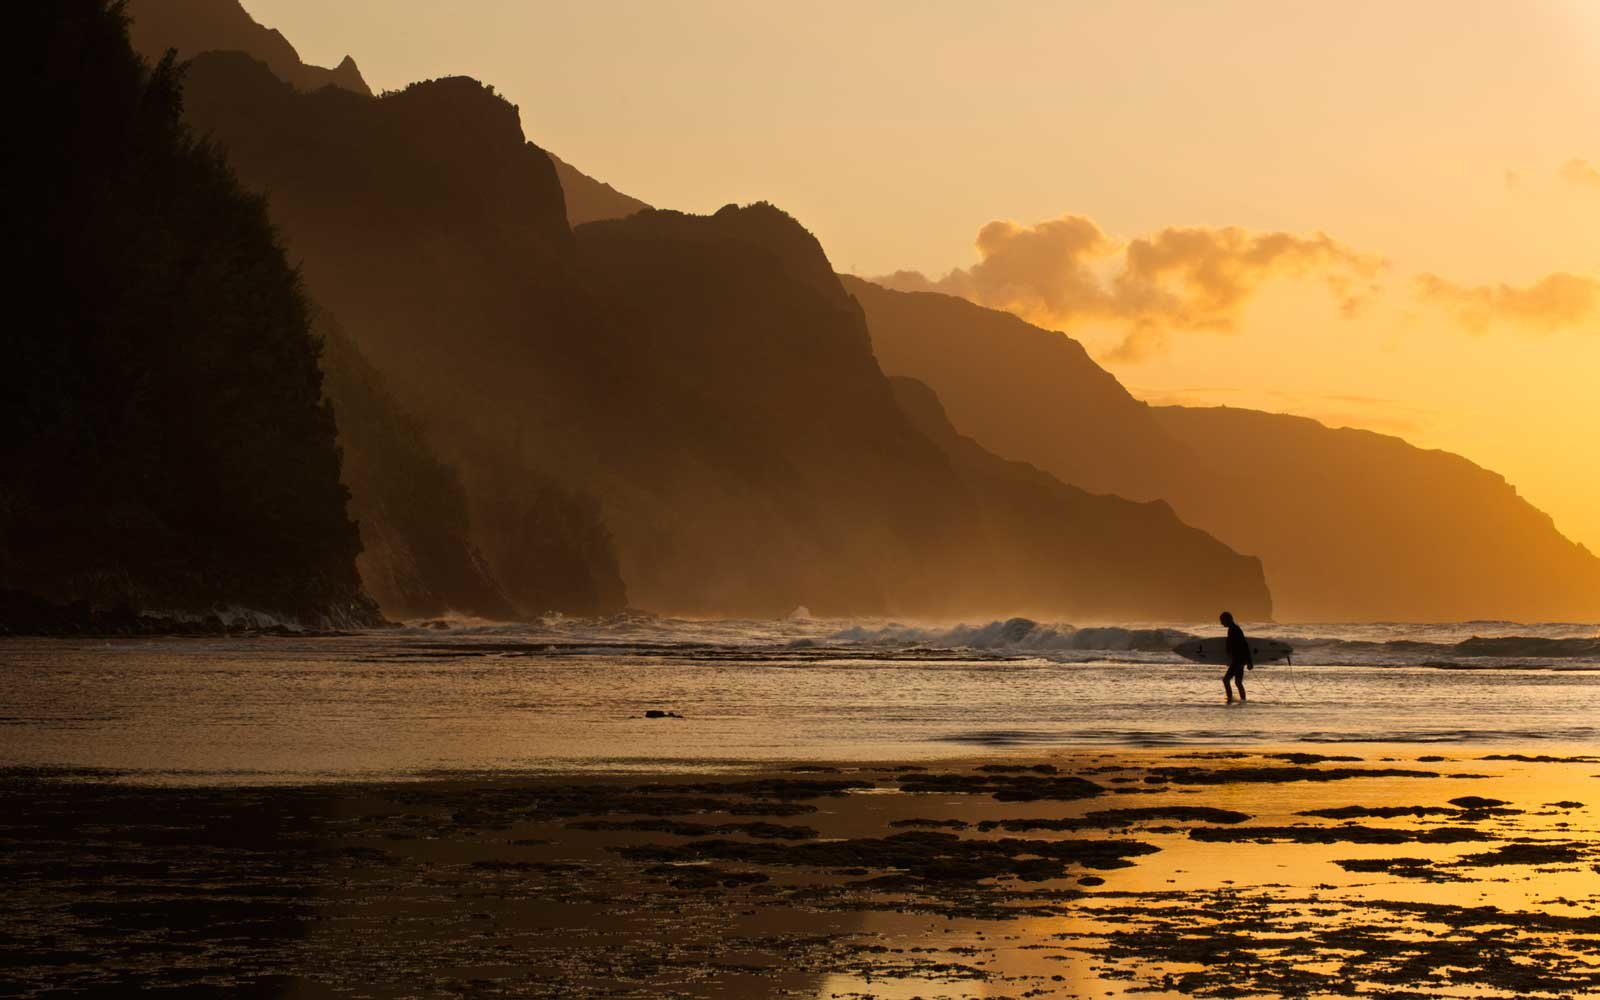 Surfer on beach and Na Pali Coast seen from Ke'e beach, Ha'ena, Kauai, Hawaii